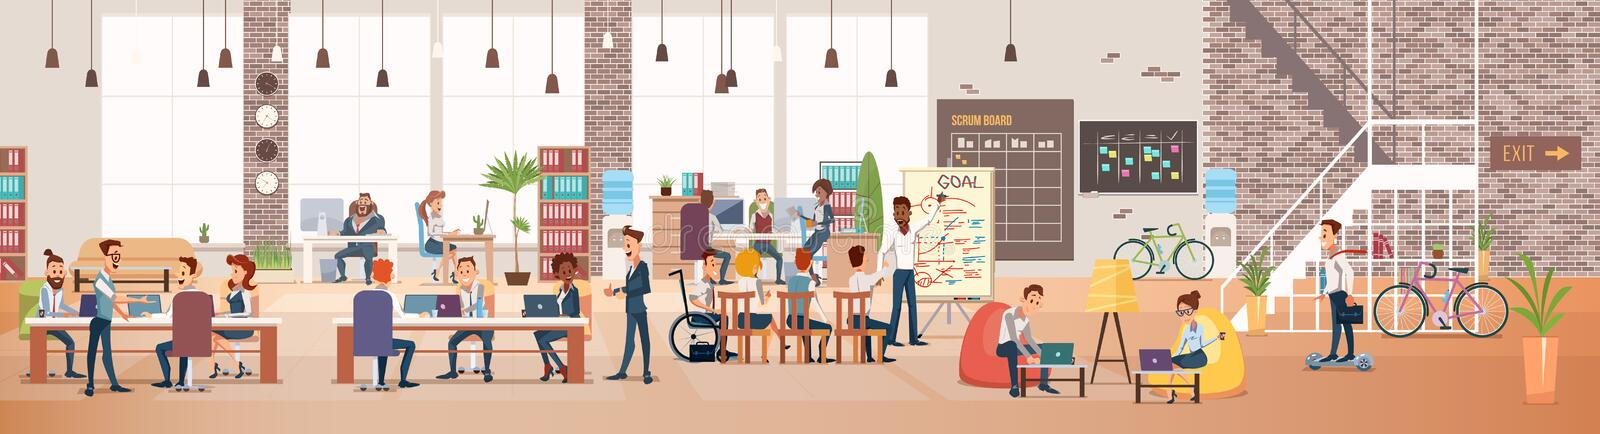 People Work in Office. Coworking Workspace. Vector royalty free illustration